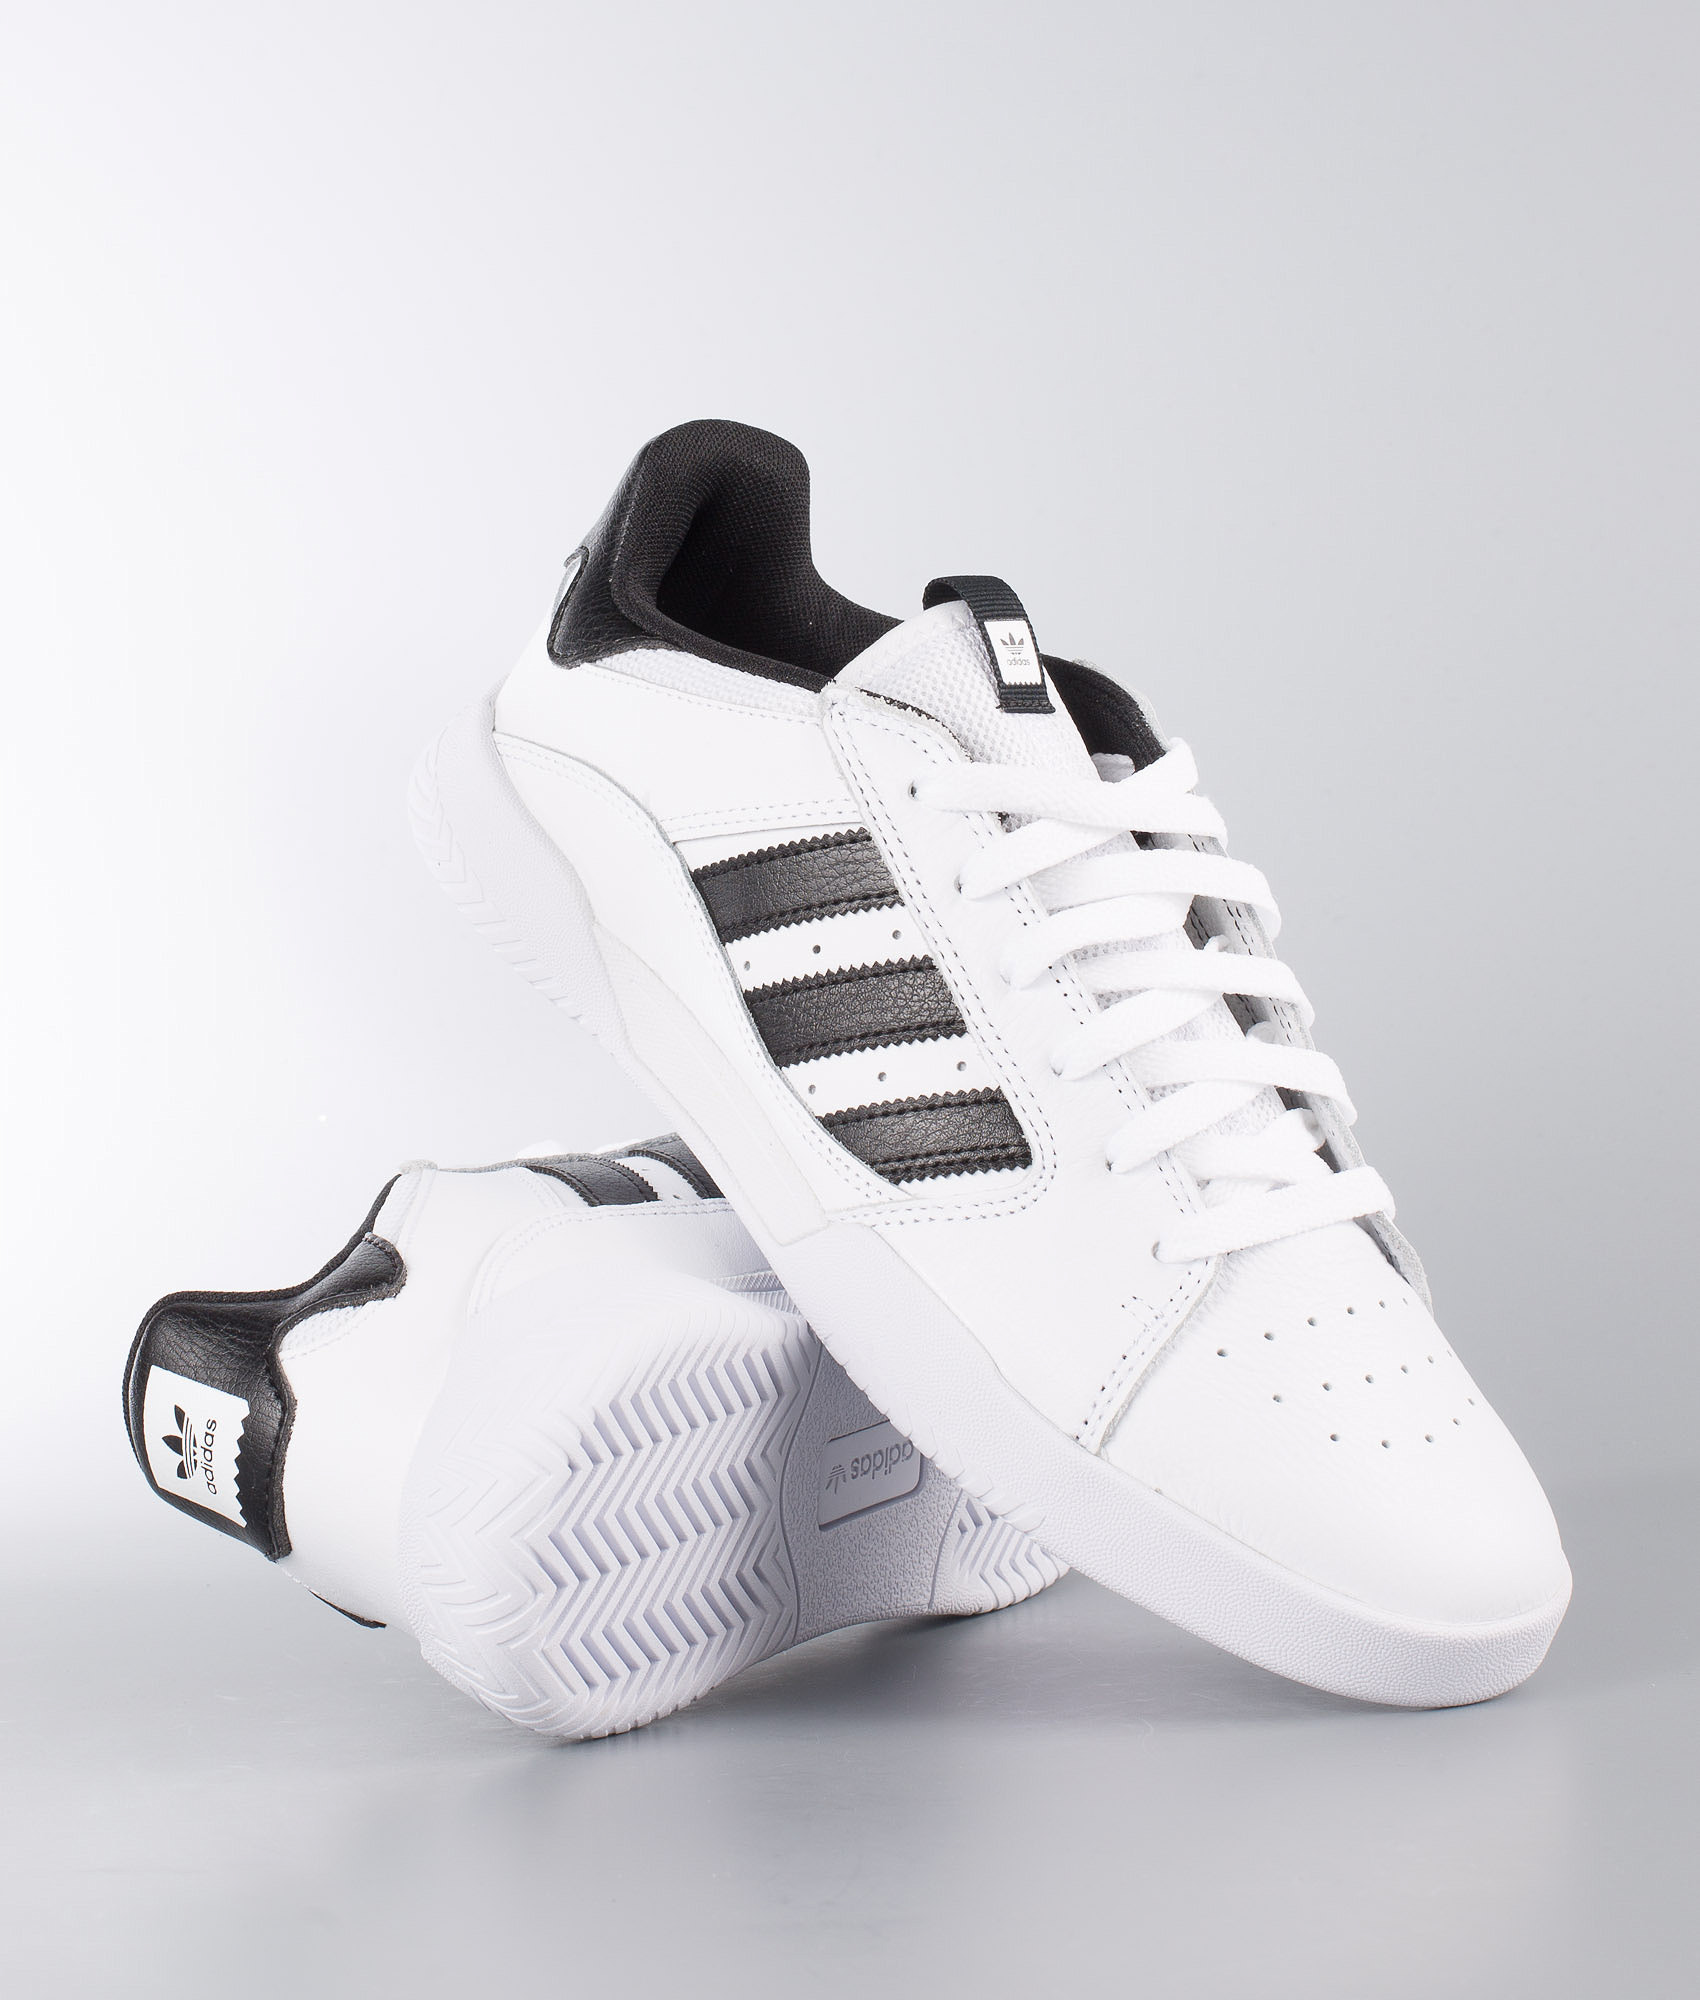 fd344eedcdf Adidas Skateboarding VRX Low Shoes Ftwr White Core Black Ftwr White ...